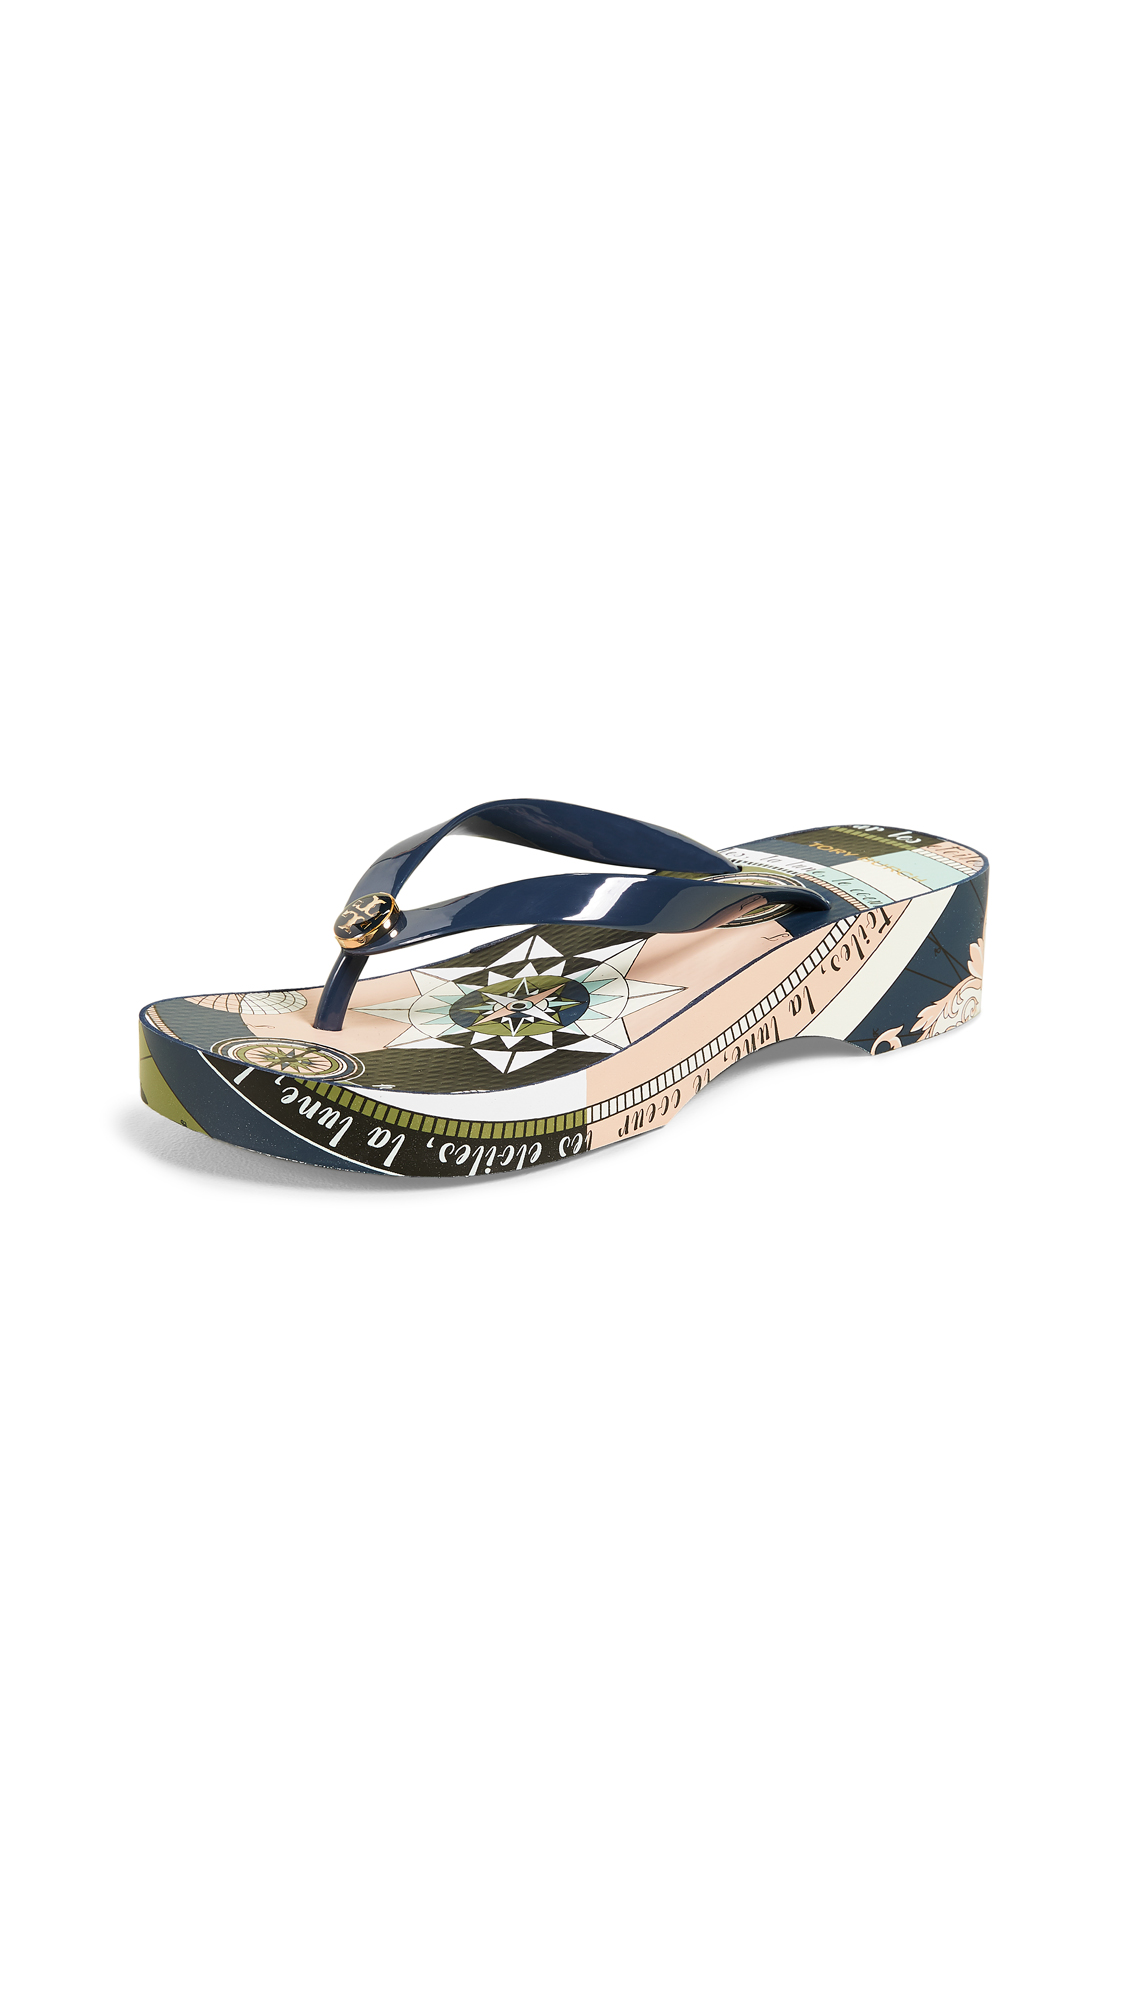 Tory Burch Cutout Wedge Flip Flops - Tory Navy/Navy Constellation